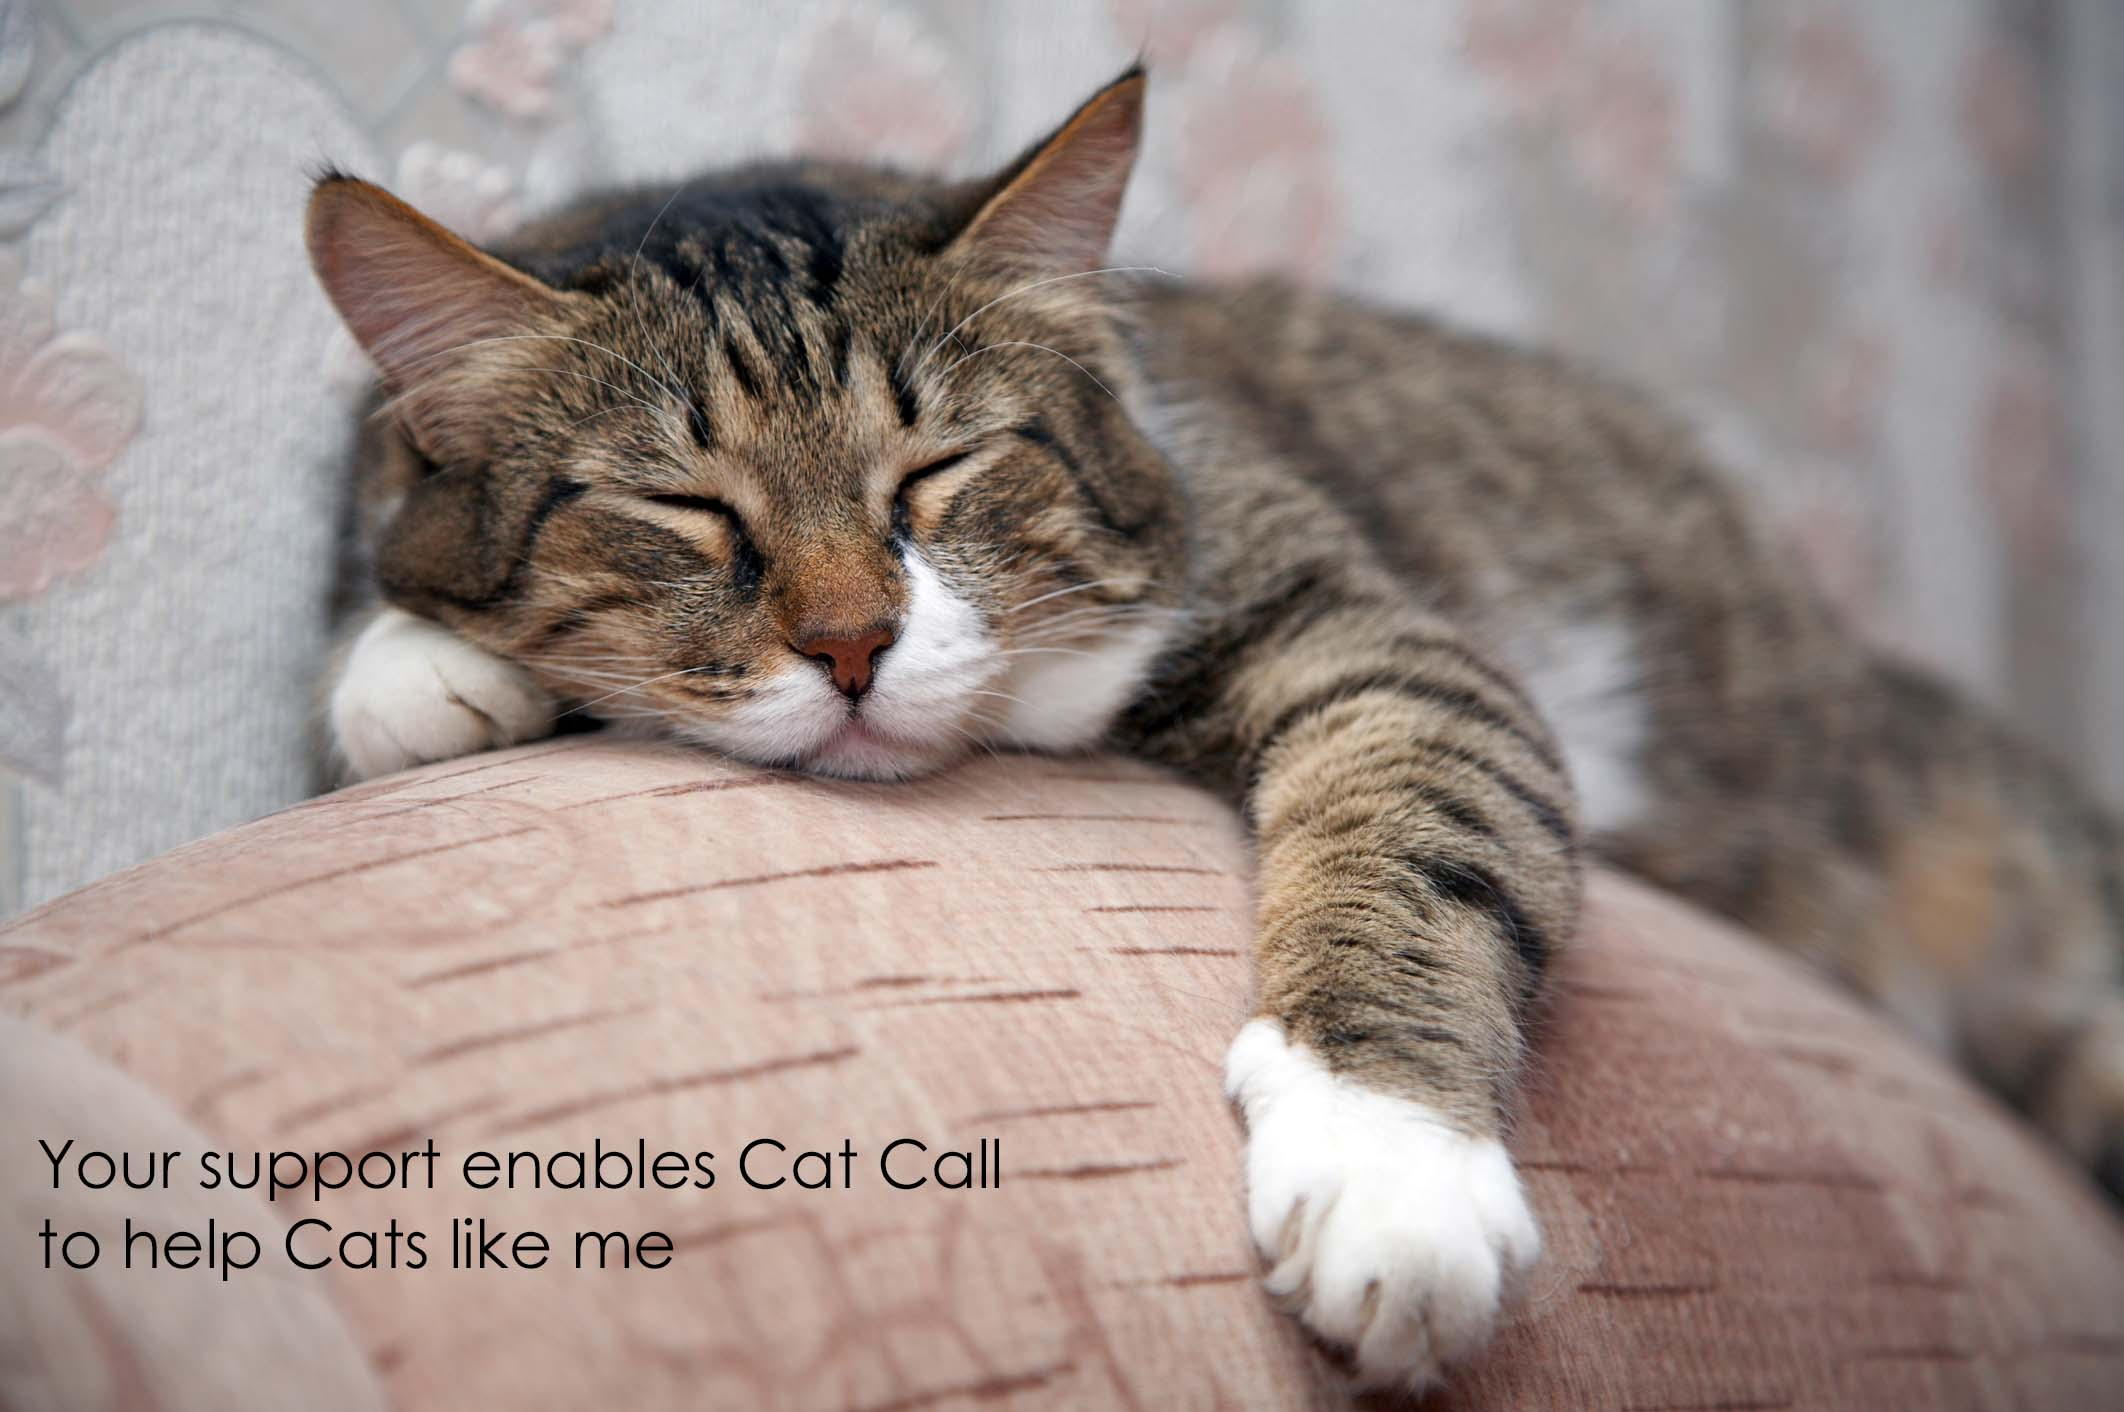 Your support enables Cat Call to help Cats like me